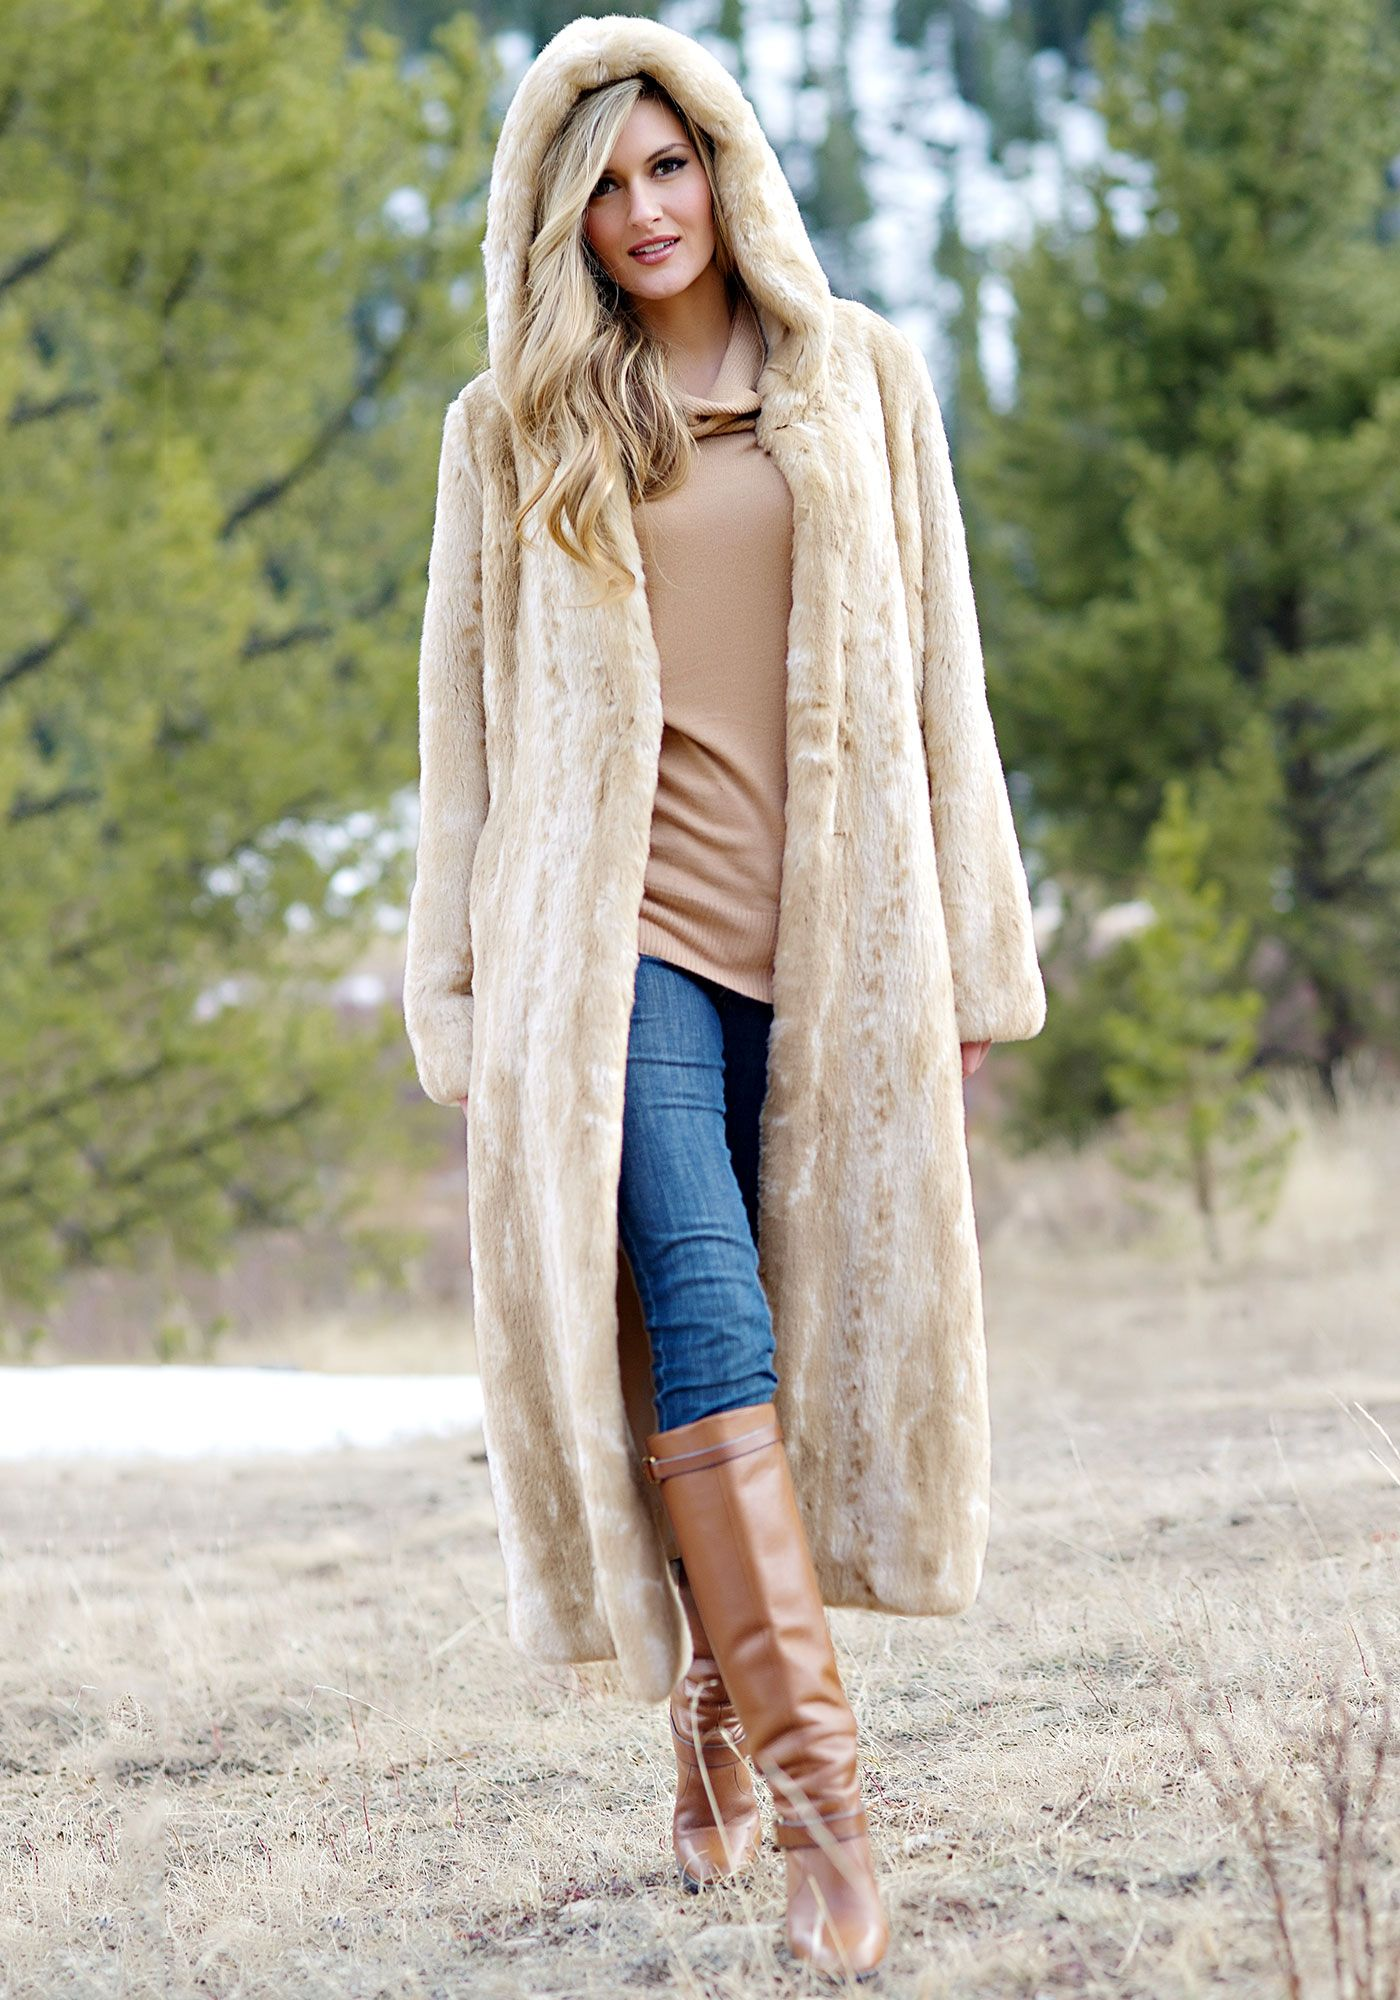 Blonde Mink Full-Length Hooded Faux Fur Coat | Mink, Fur coat and Fur